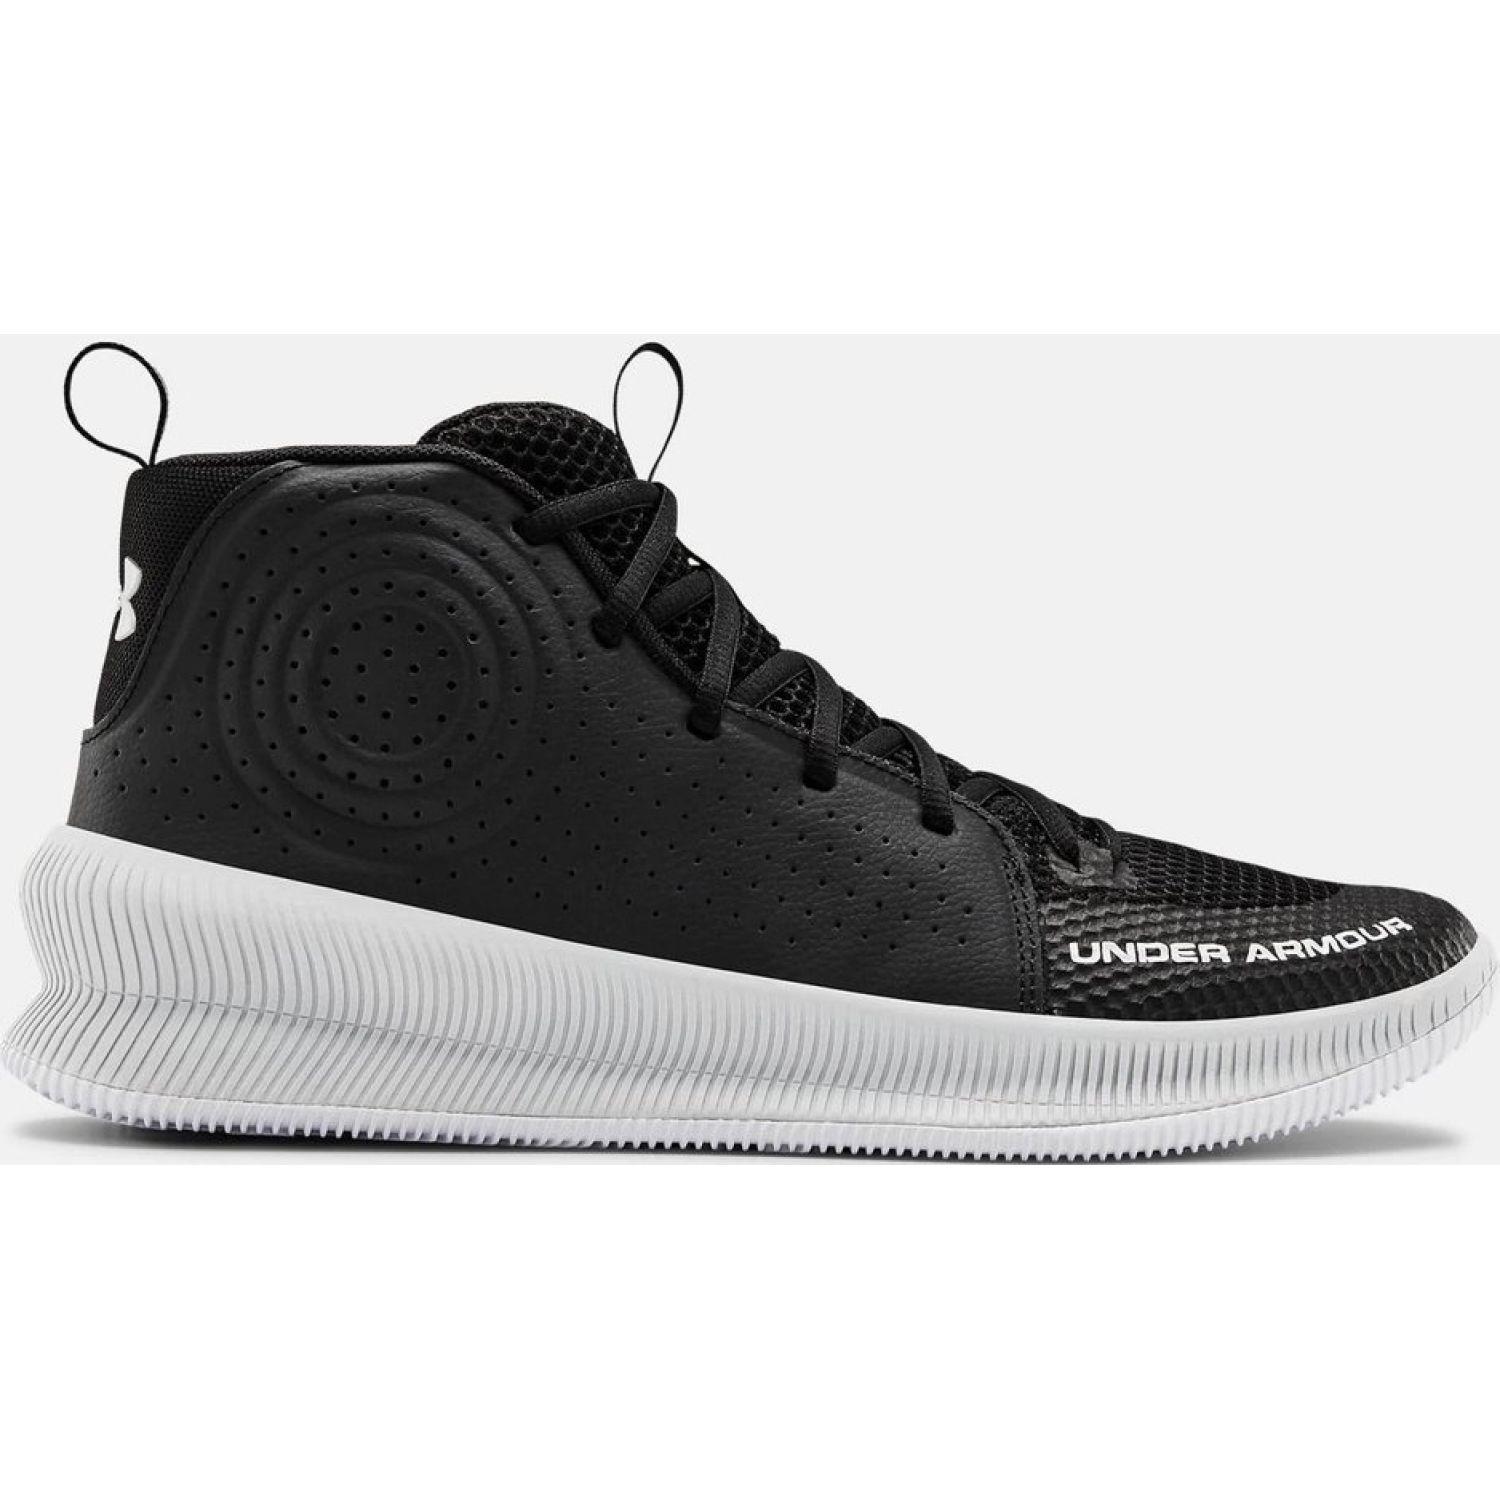 Under Armour Ua Jet Negro / blanco Hombres